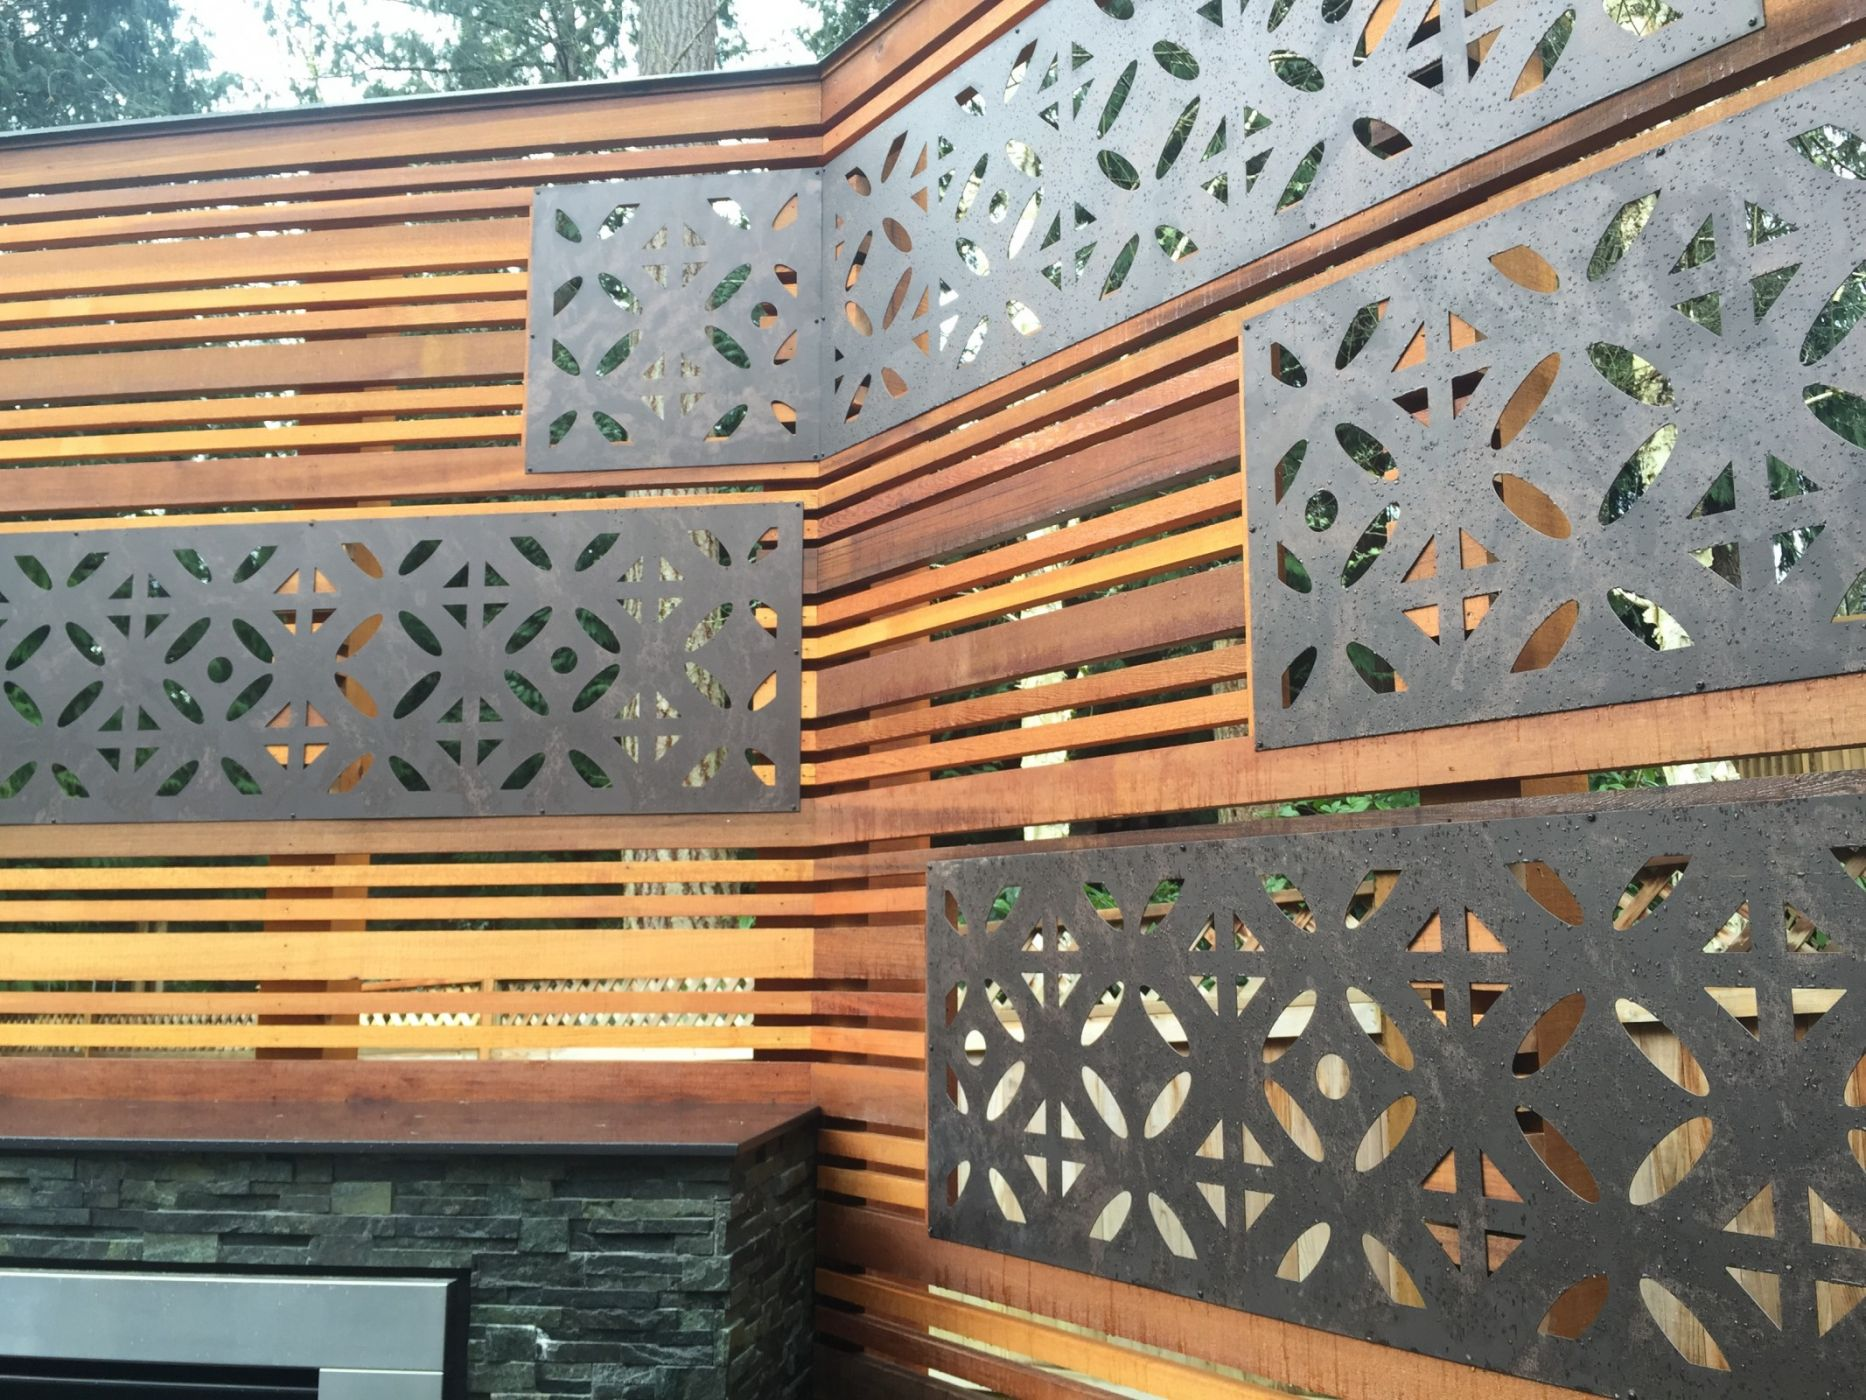 Sammamish deck parasoleil privacy screen sublime garden for Hanging privacy screens for decks